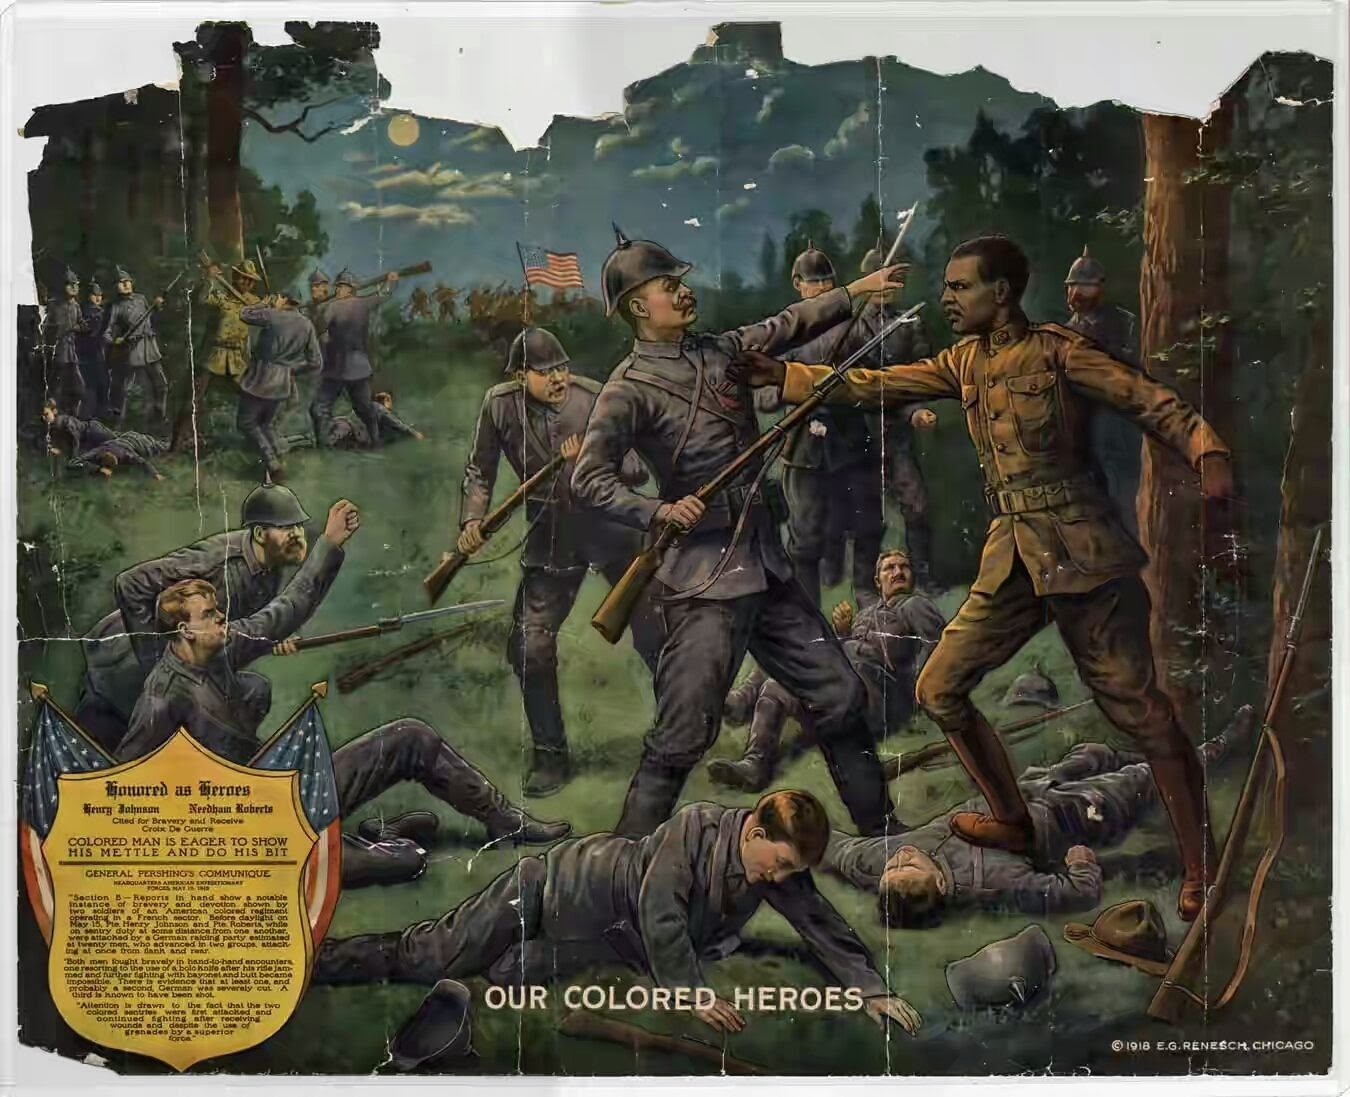 Our Colored Heroes (1918), by E.G. Renesch of Chicago, dramatized Johnson's actions in war.